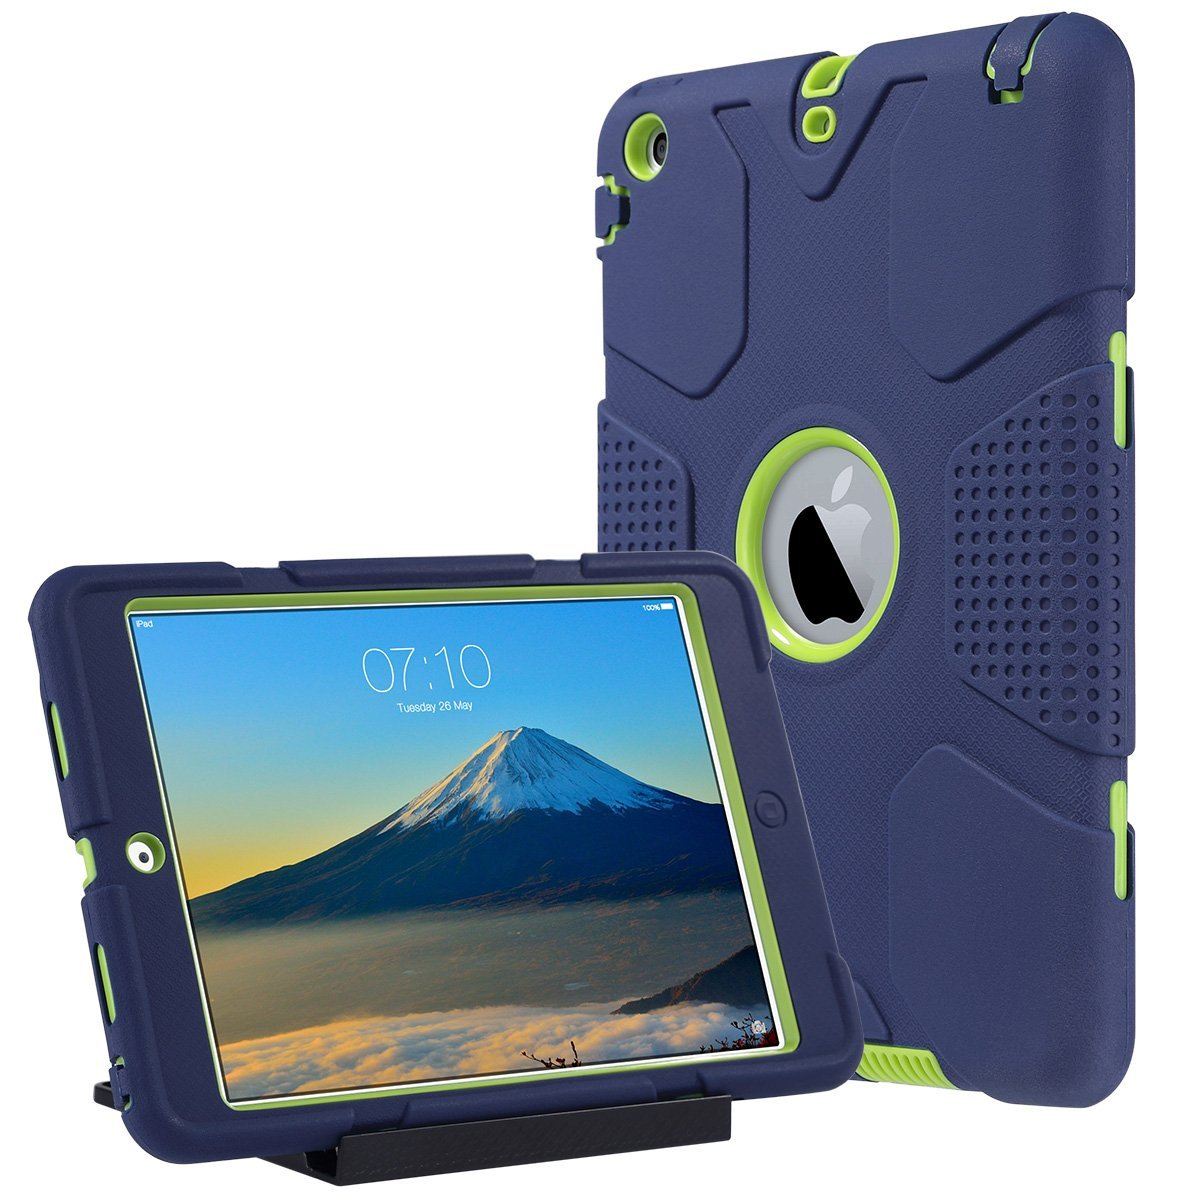 iPad Mini 2 Case, iPad Mini 3 Cover, ULAK Shockproof Smart Fit Bumper Hard Cases Three Layer Knox Armor Protective Cover for Apple iPad Mini 1 2 3 Tablet with Separate Kickstand Navy Blue+ Lime Green